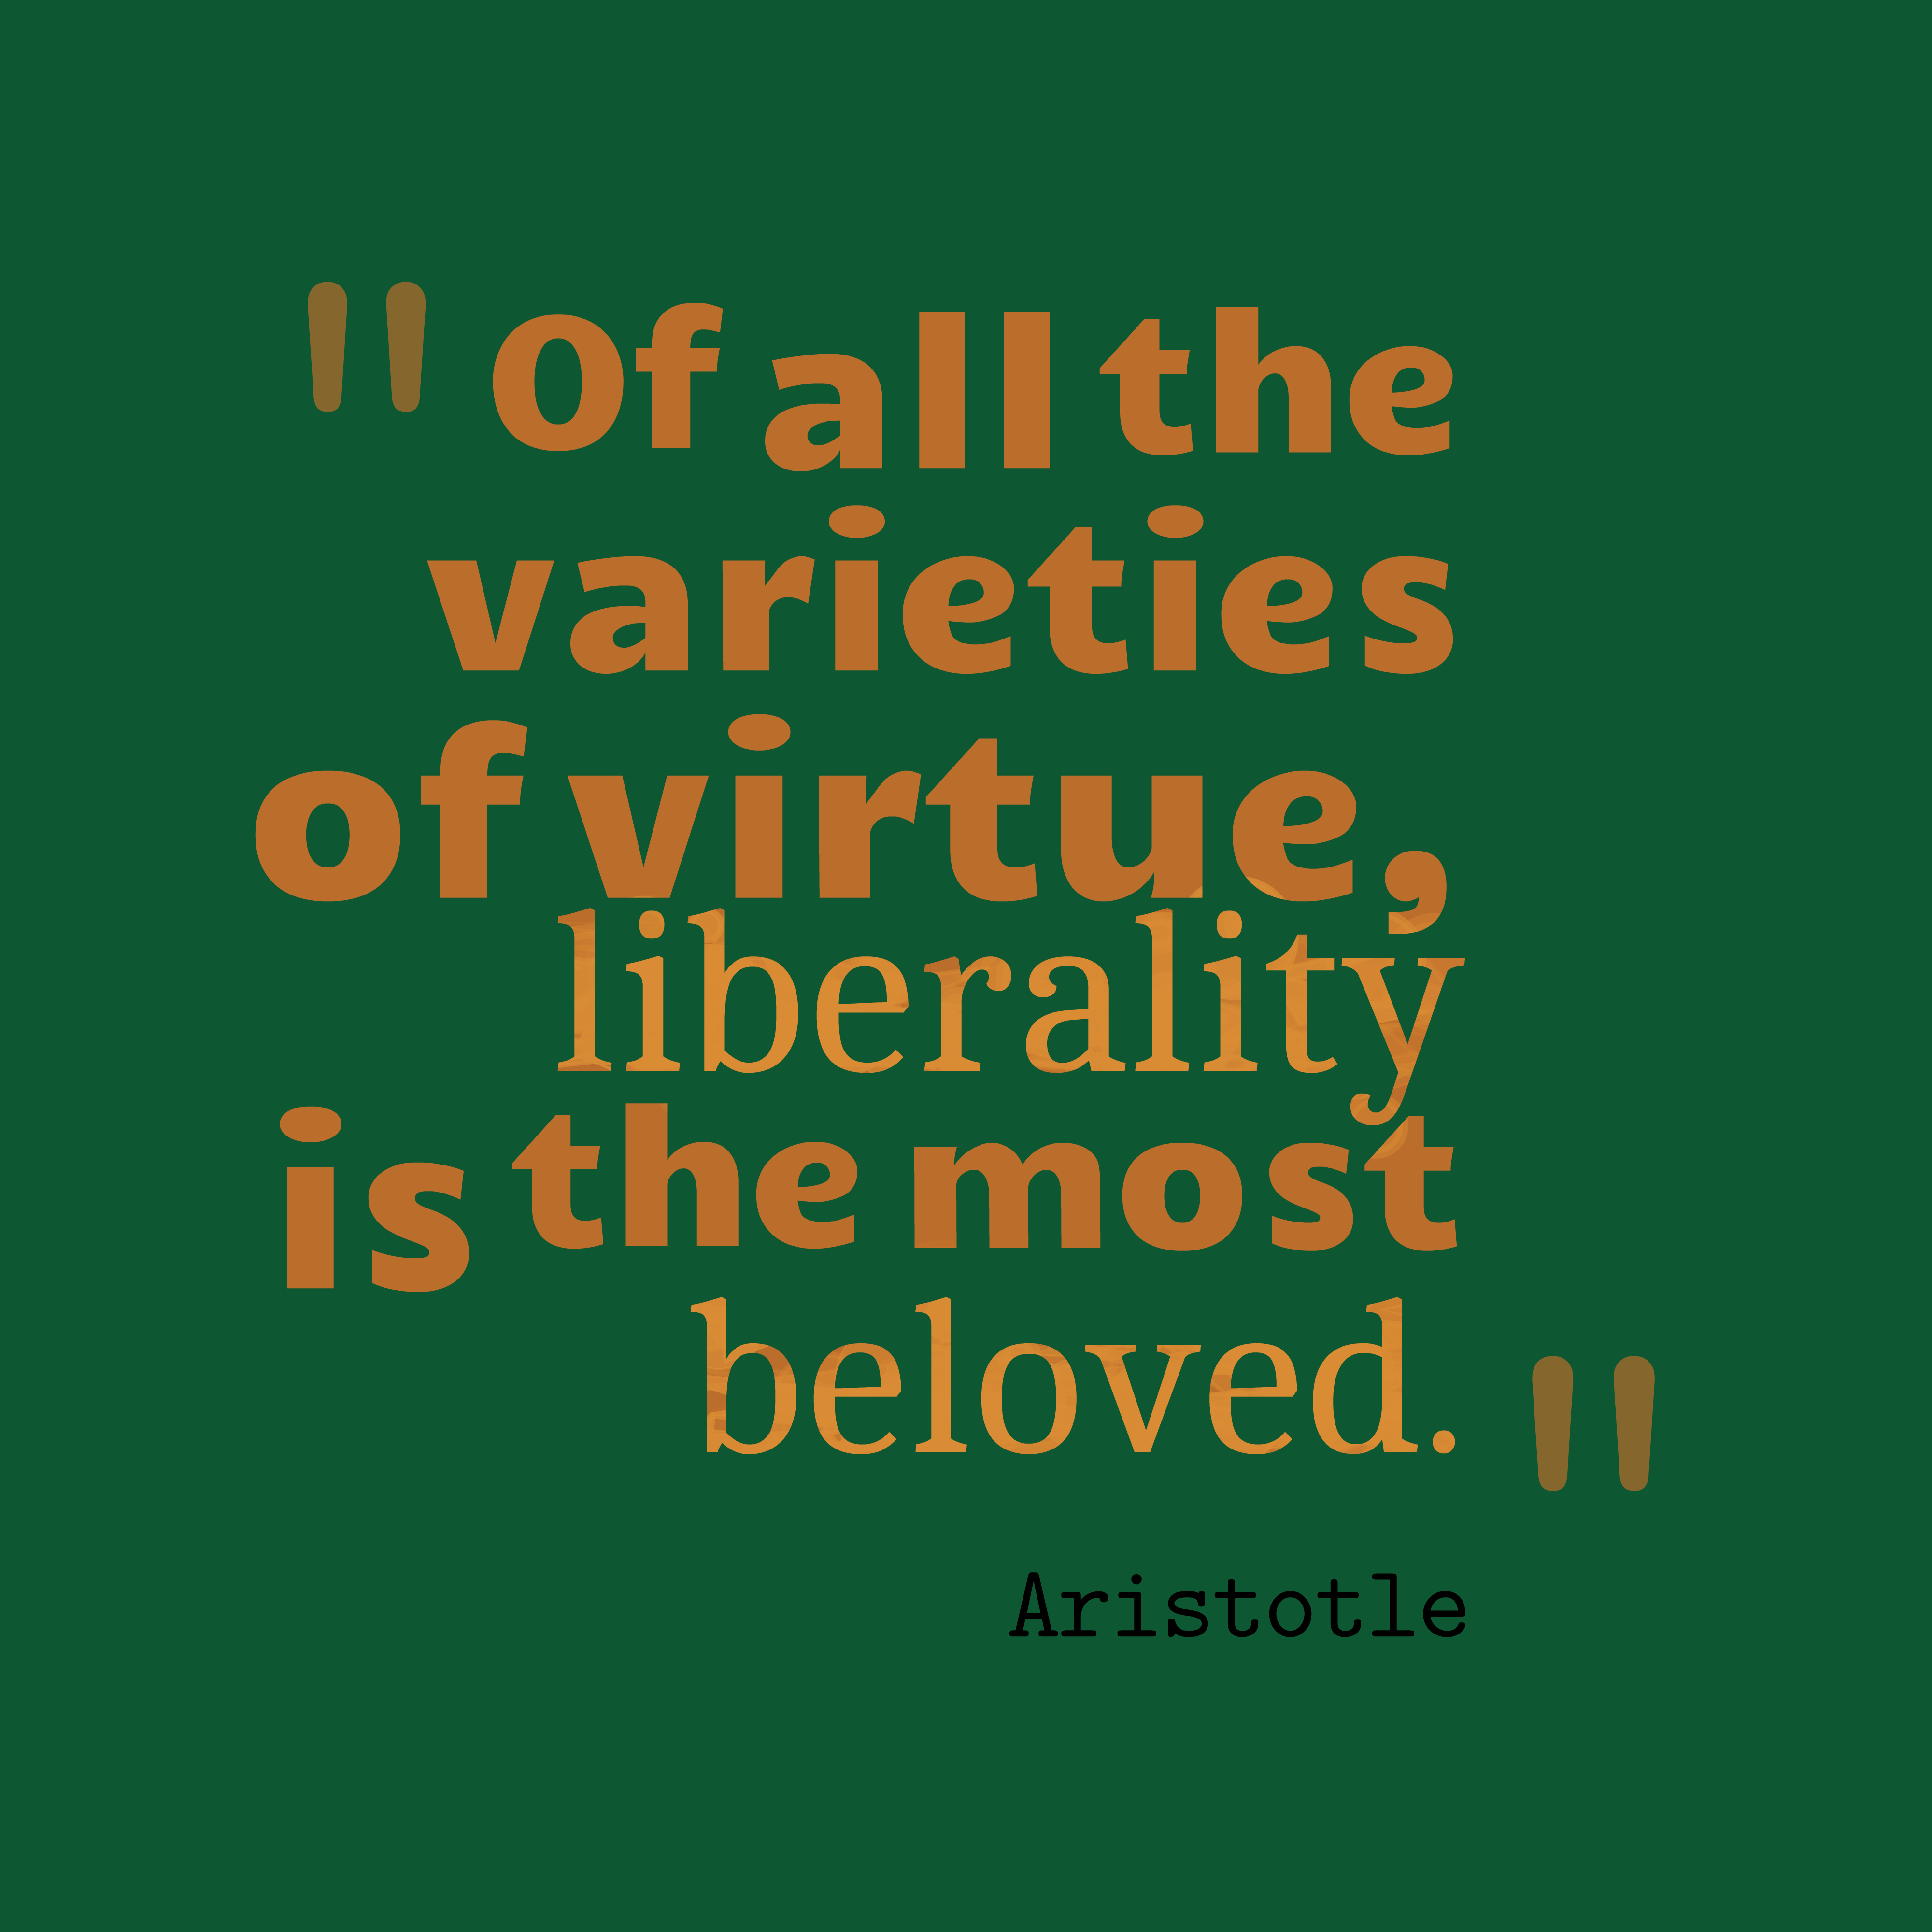 Quotes image of Of all the varieties of virtue, liberality is the most beloved.